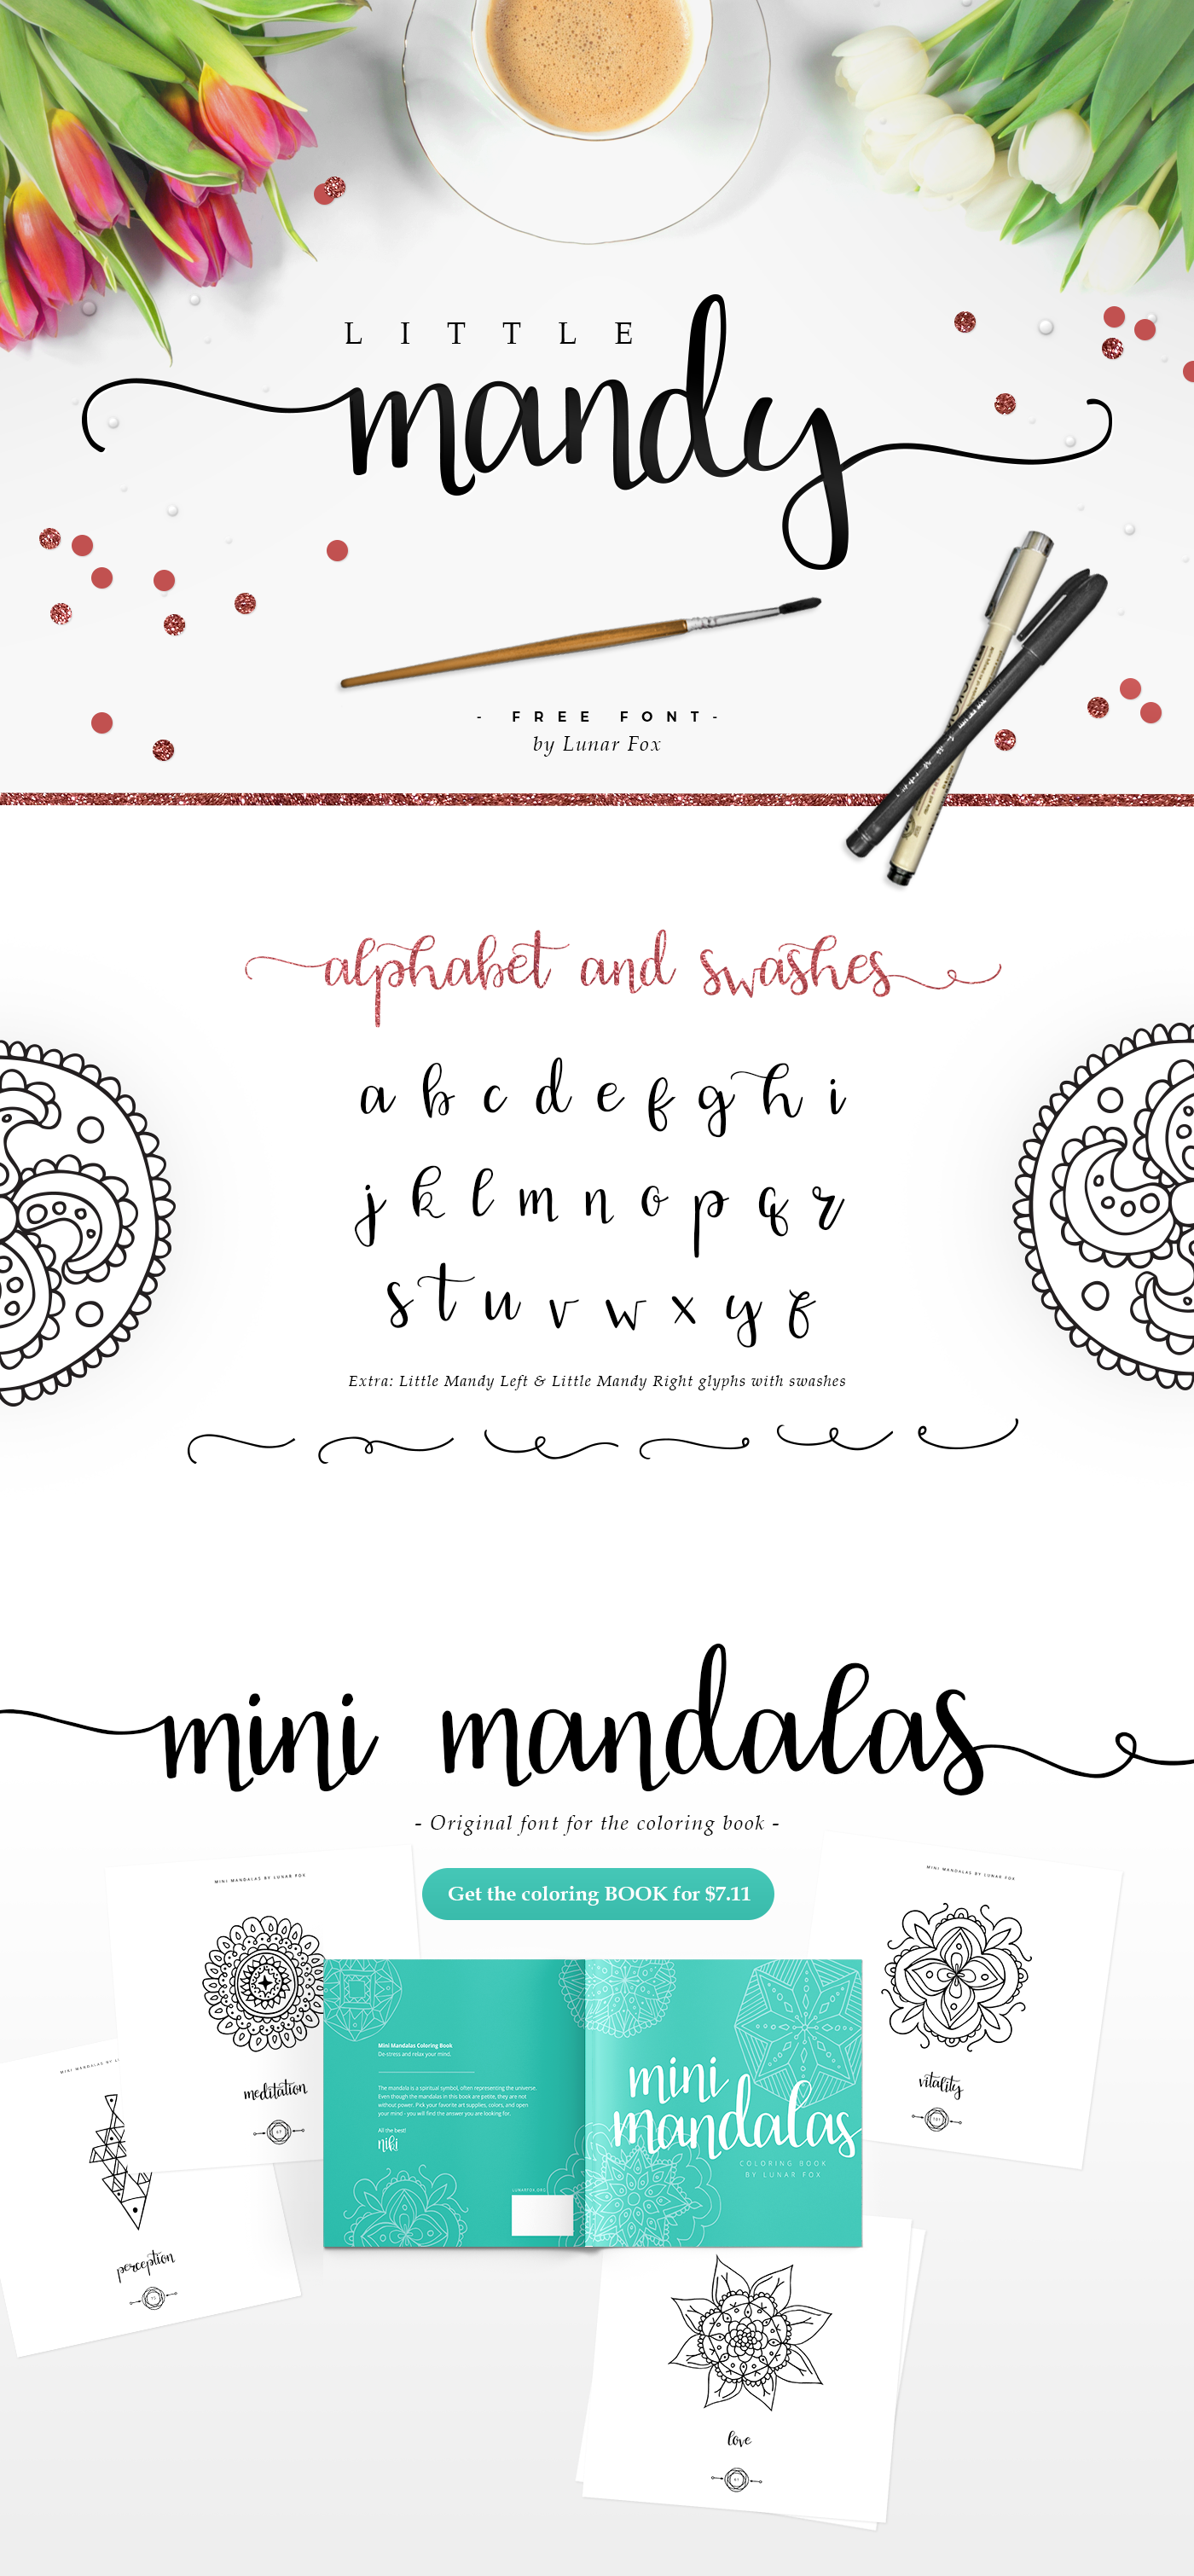 Some People Asked For The Font That Was Used In Coloring Book Mini Mandalas So They Could Use It Their Projects Now We Are Publishing And